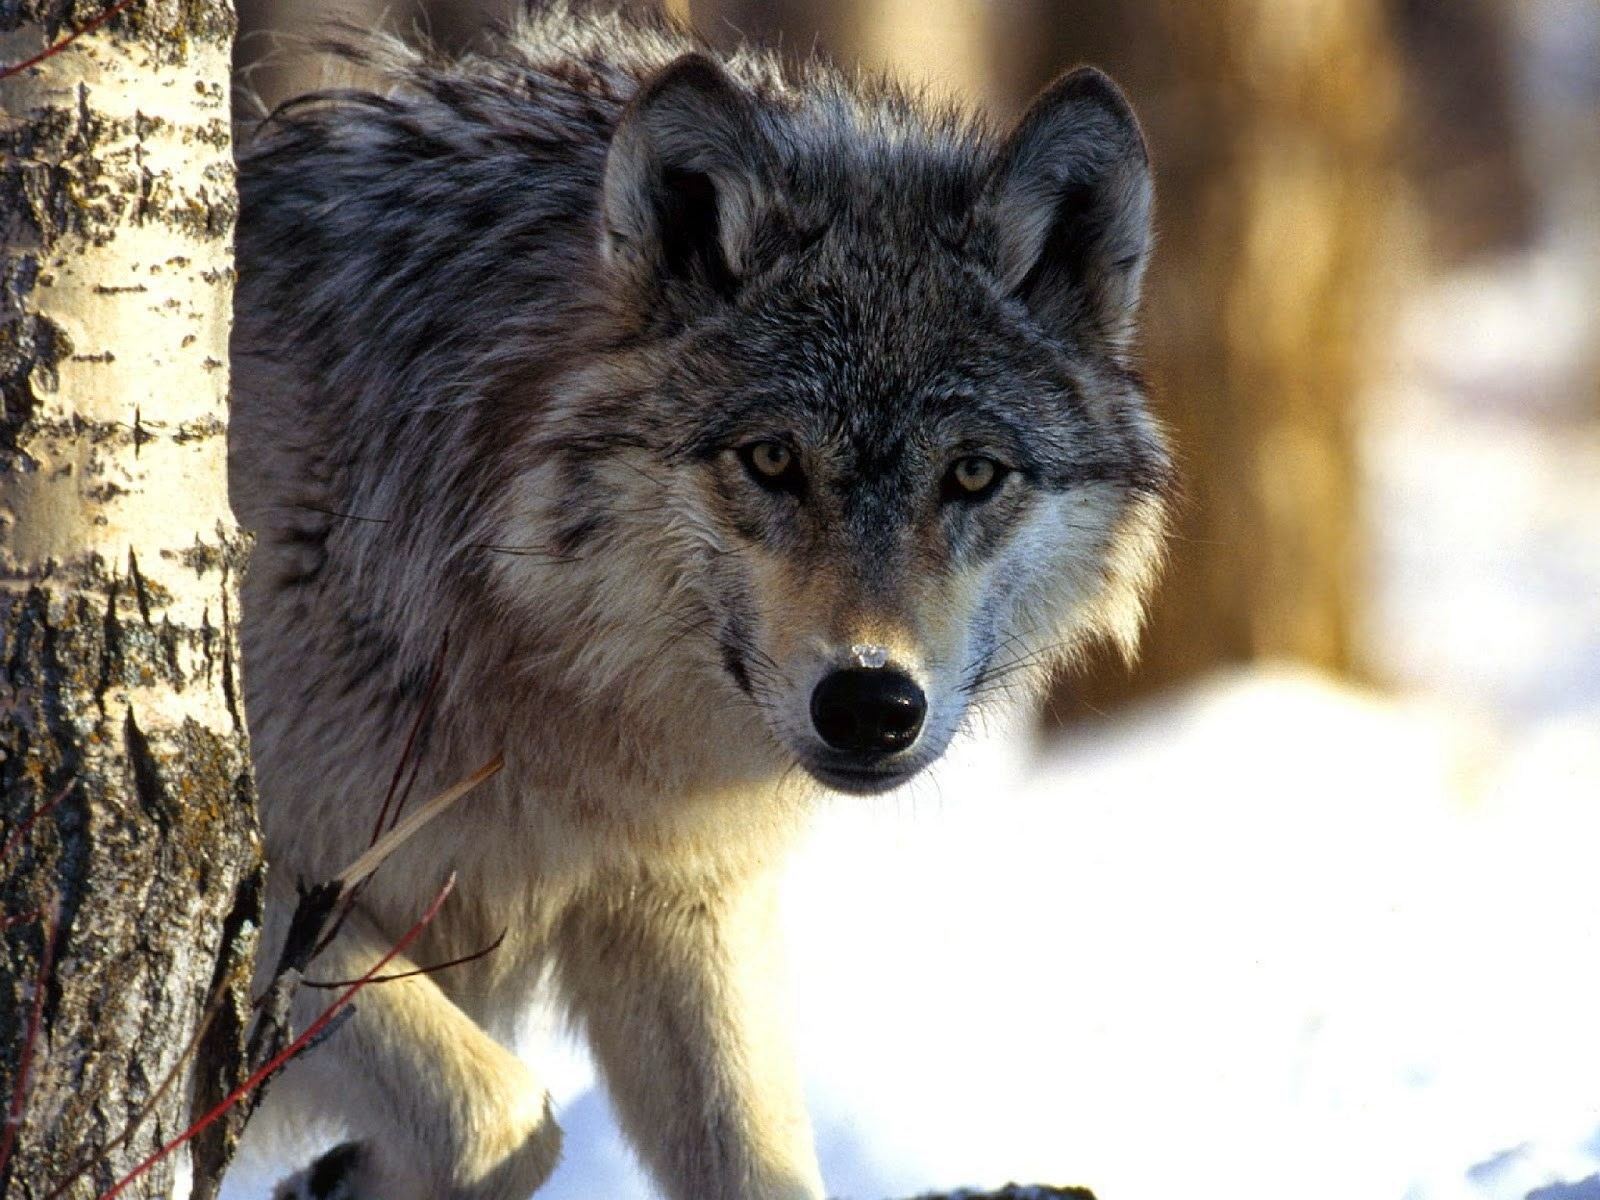 http://www.kxly.com/news/spokane-news/cattlemens-association-fish-and-wildlife-should-do-more-to-protect-people-from-wolves/30047588